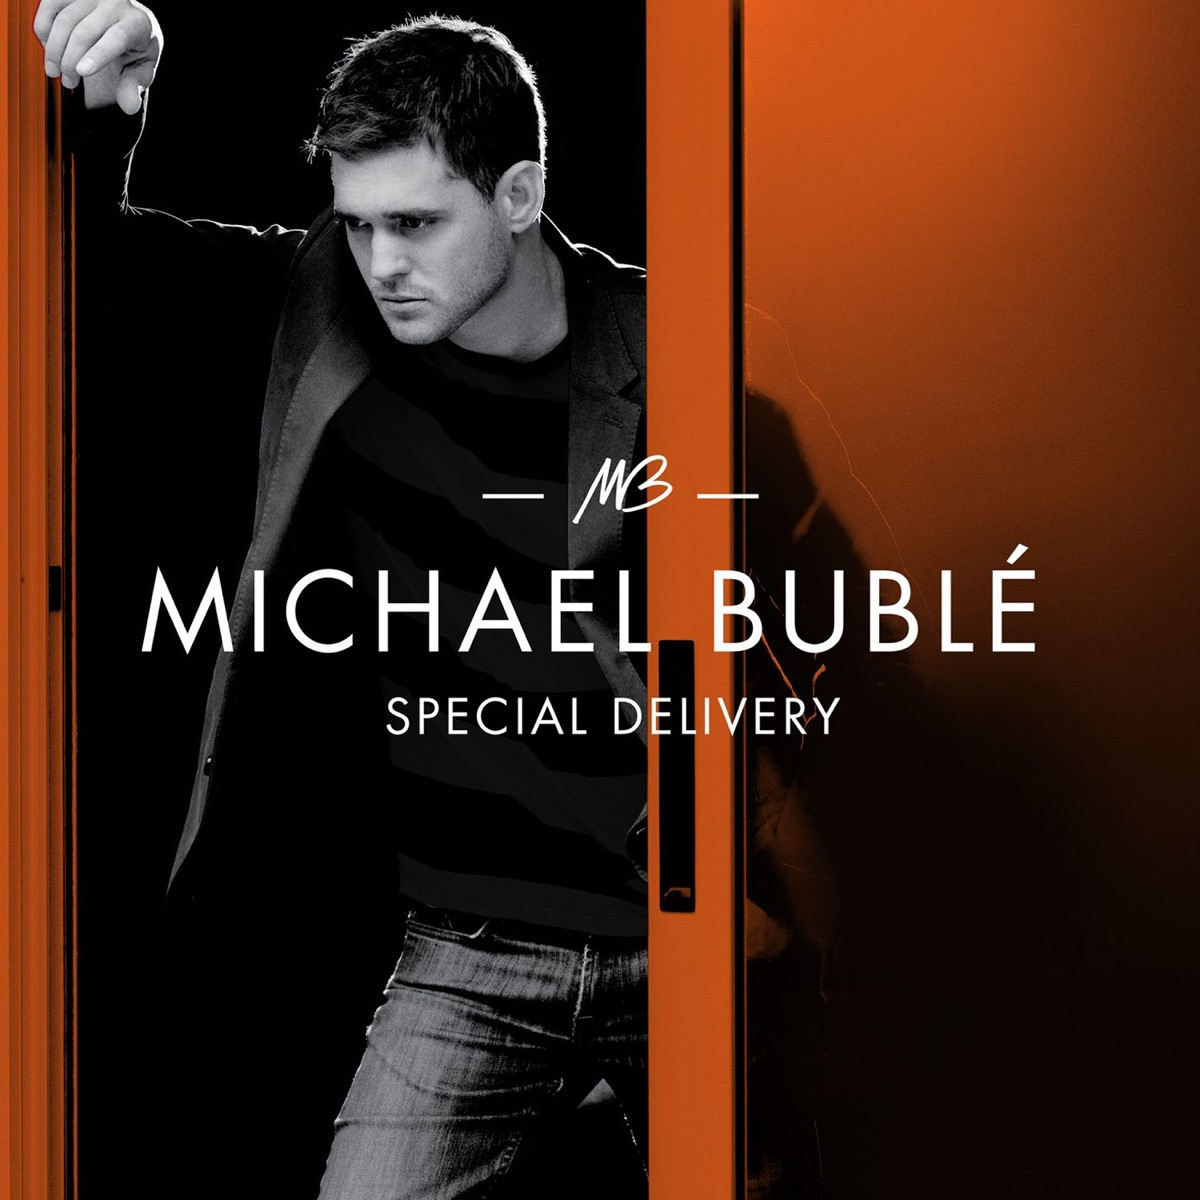 Hollywood The Deluxe CDs EP Michael Buble SIGILLATO